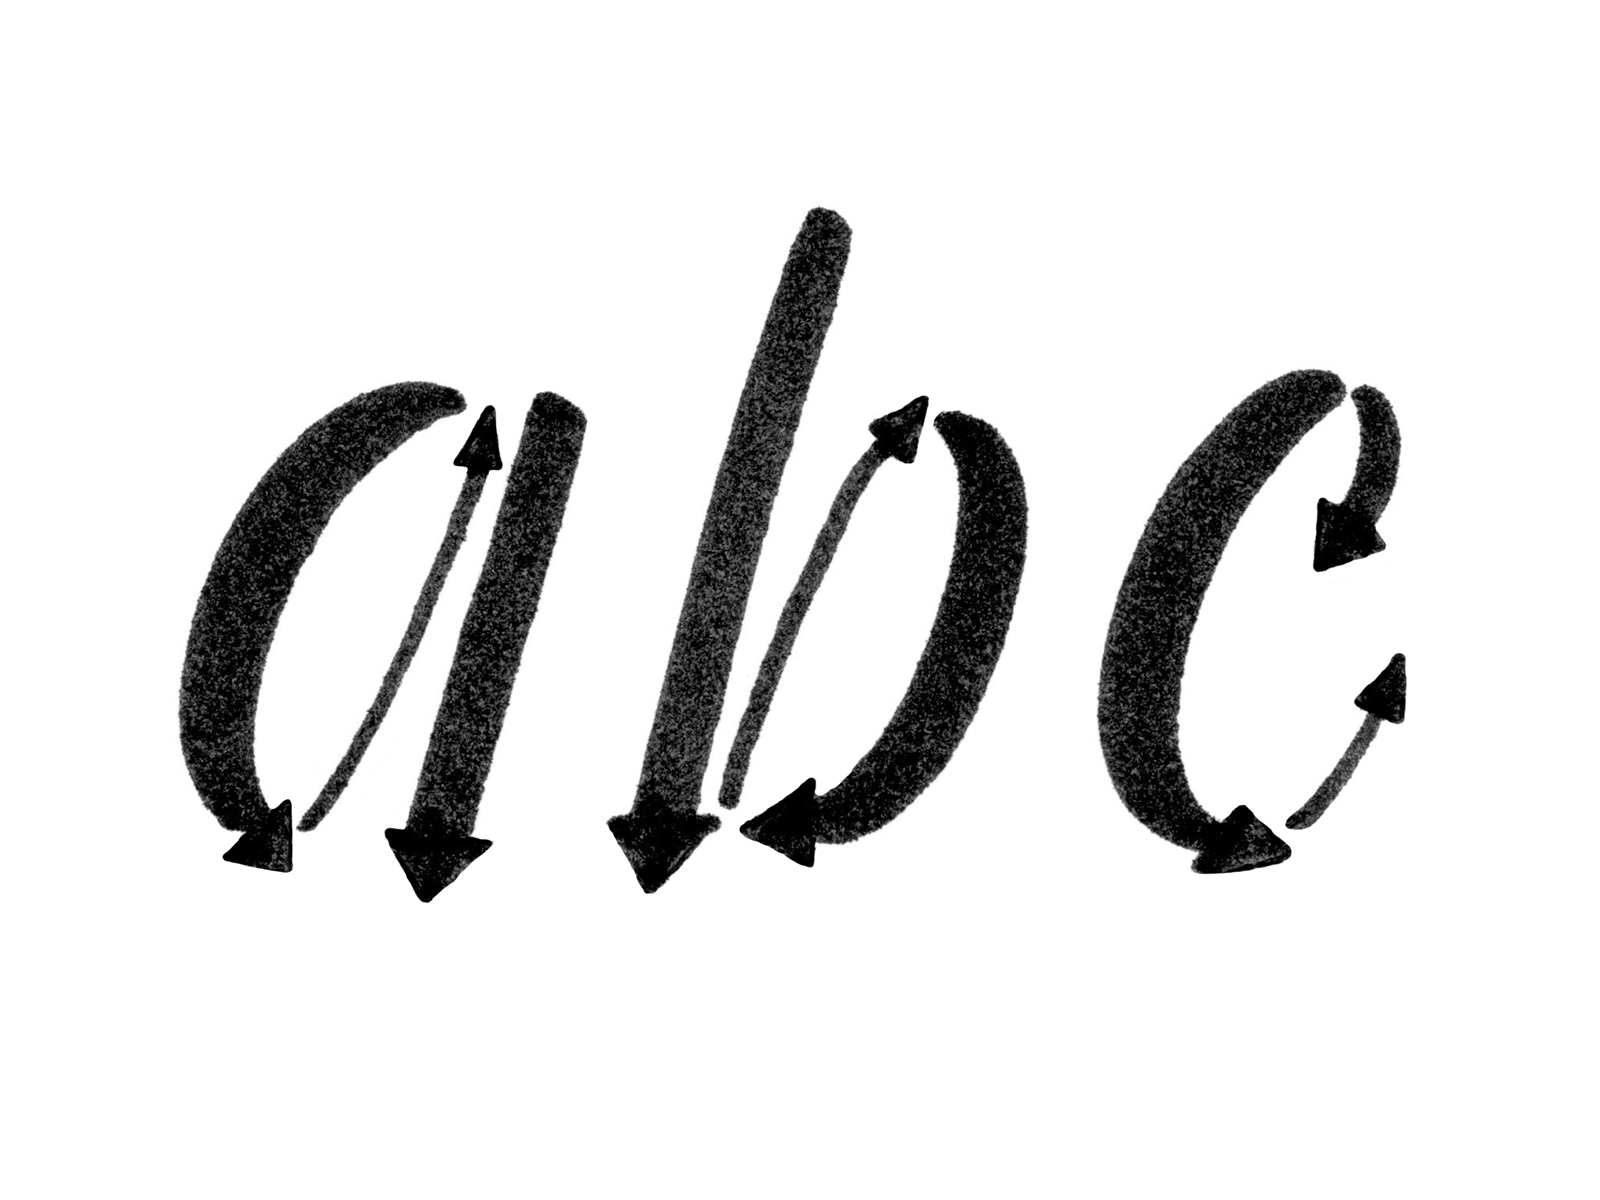 Basic strokes that we've covered are able to make up the majority of the minuscule letterforms